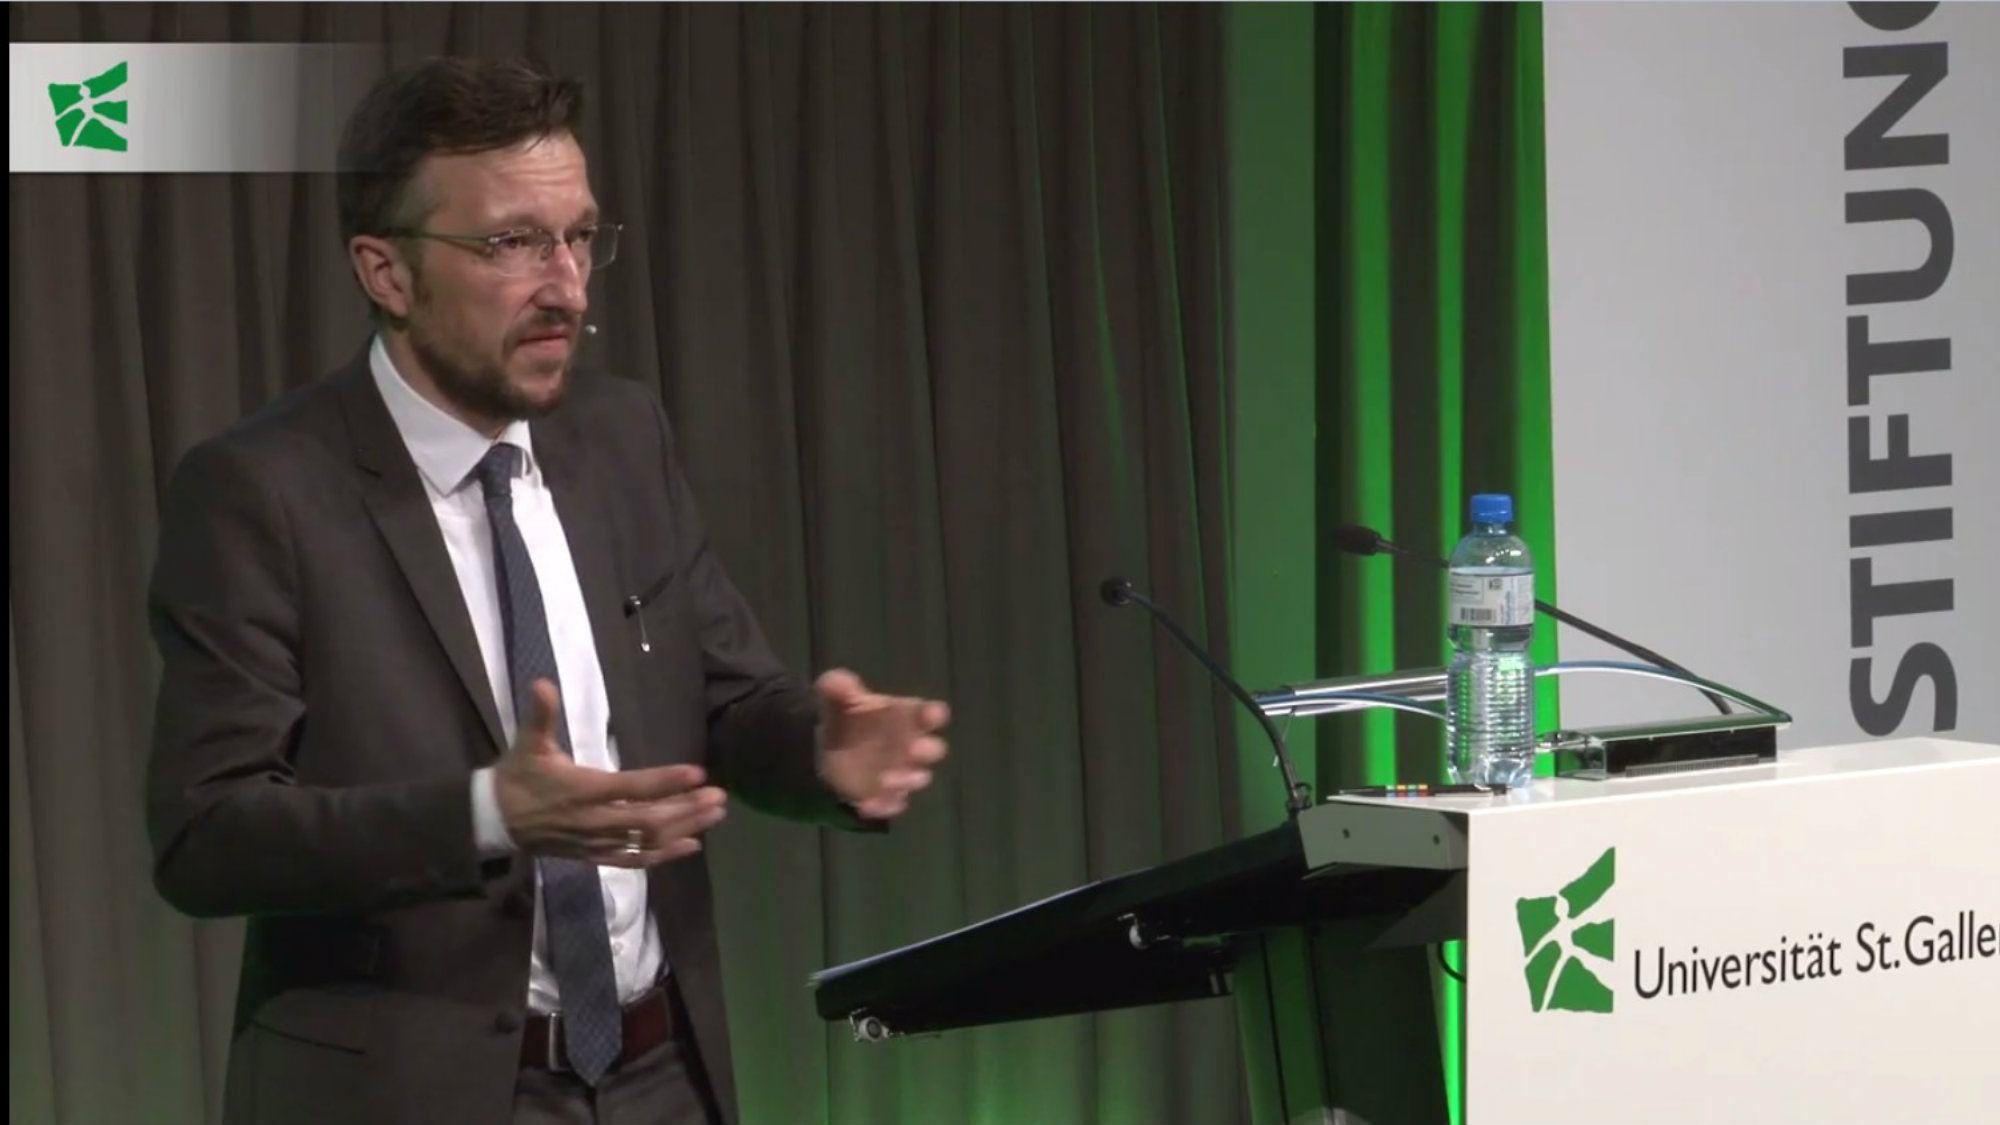 university of st gallen knowledge videos lukas baumlrfuss on competition and conformism middot videos